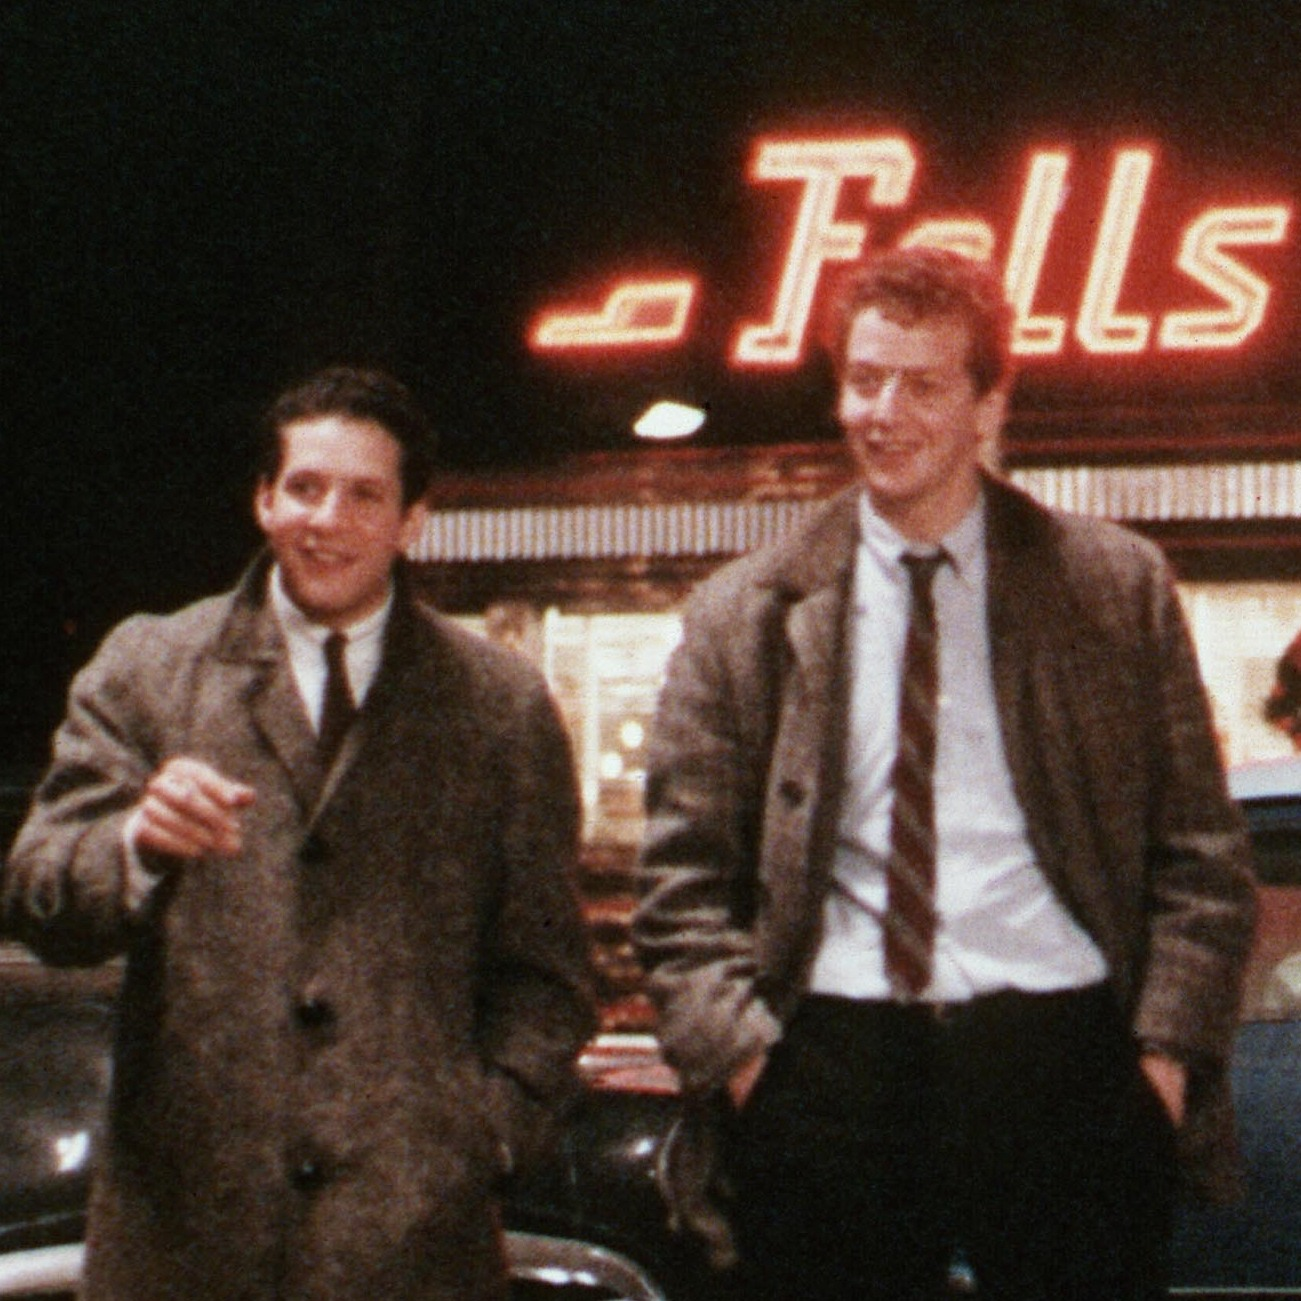 Steve Guttenberg (left) stars alongside Daniel Stern (center) and Paul Reiser in 1982's Diner, which continues to be one of his most beloved film projects. He sometimes appears as a guest at revival screenings.